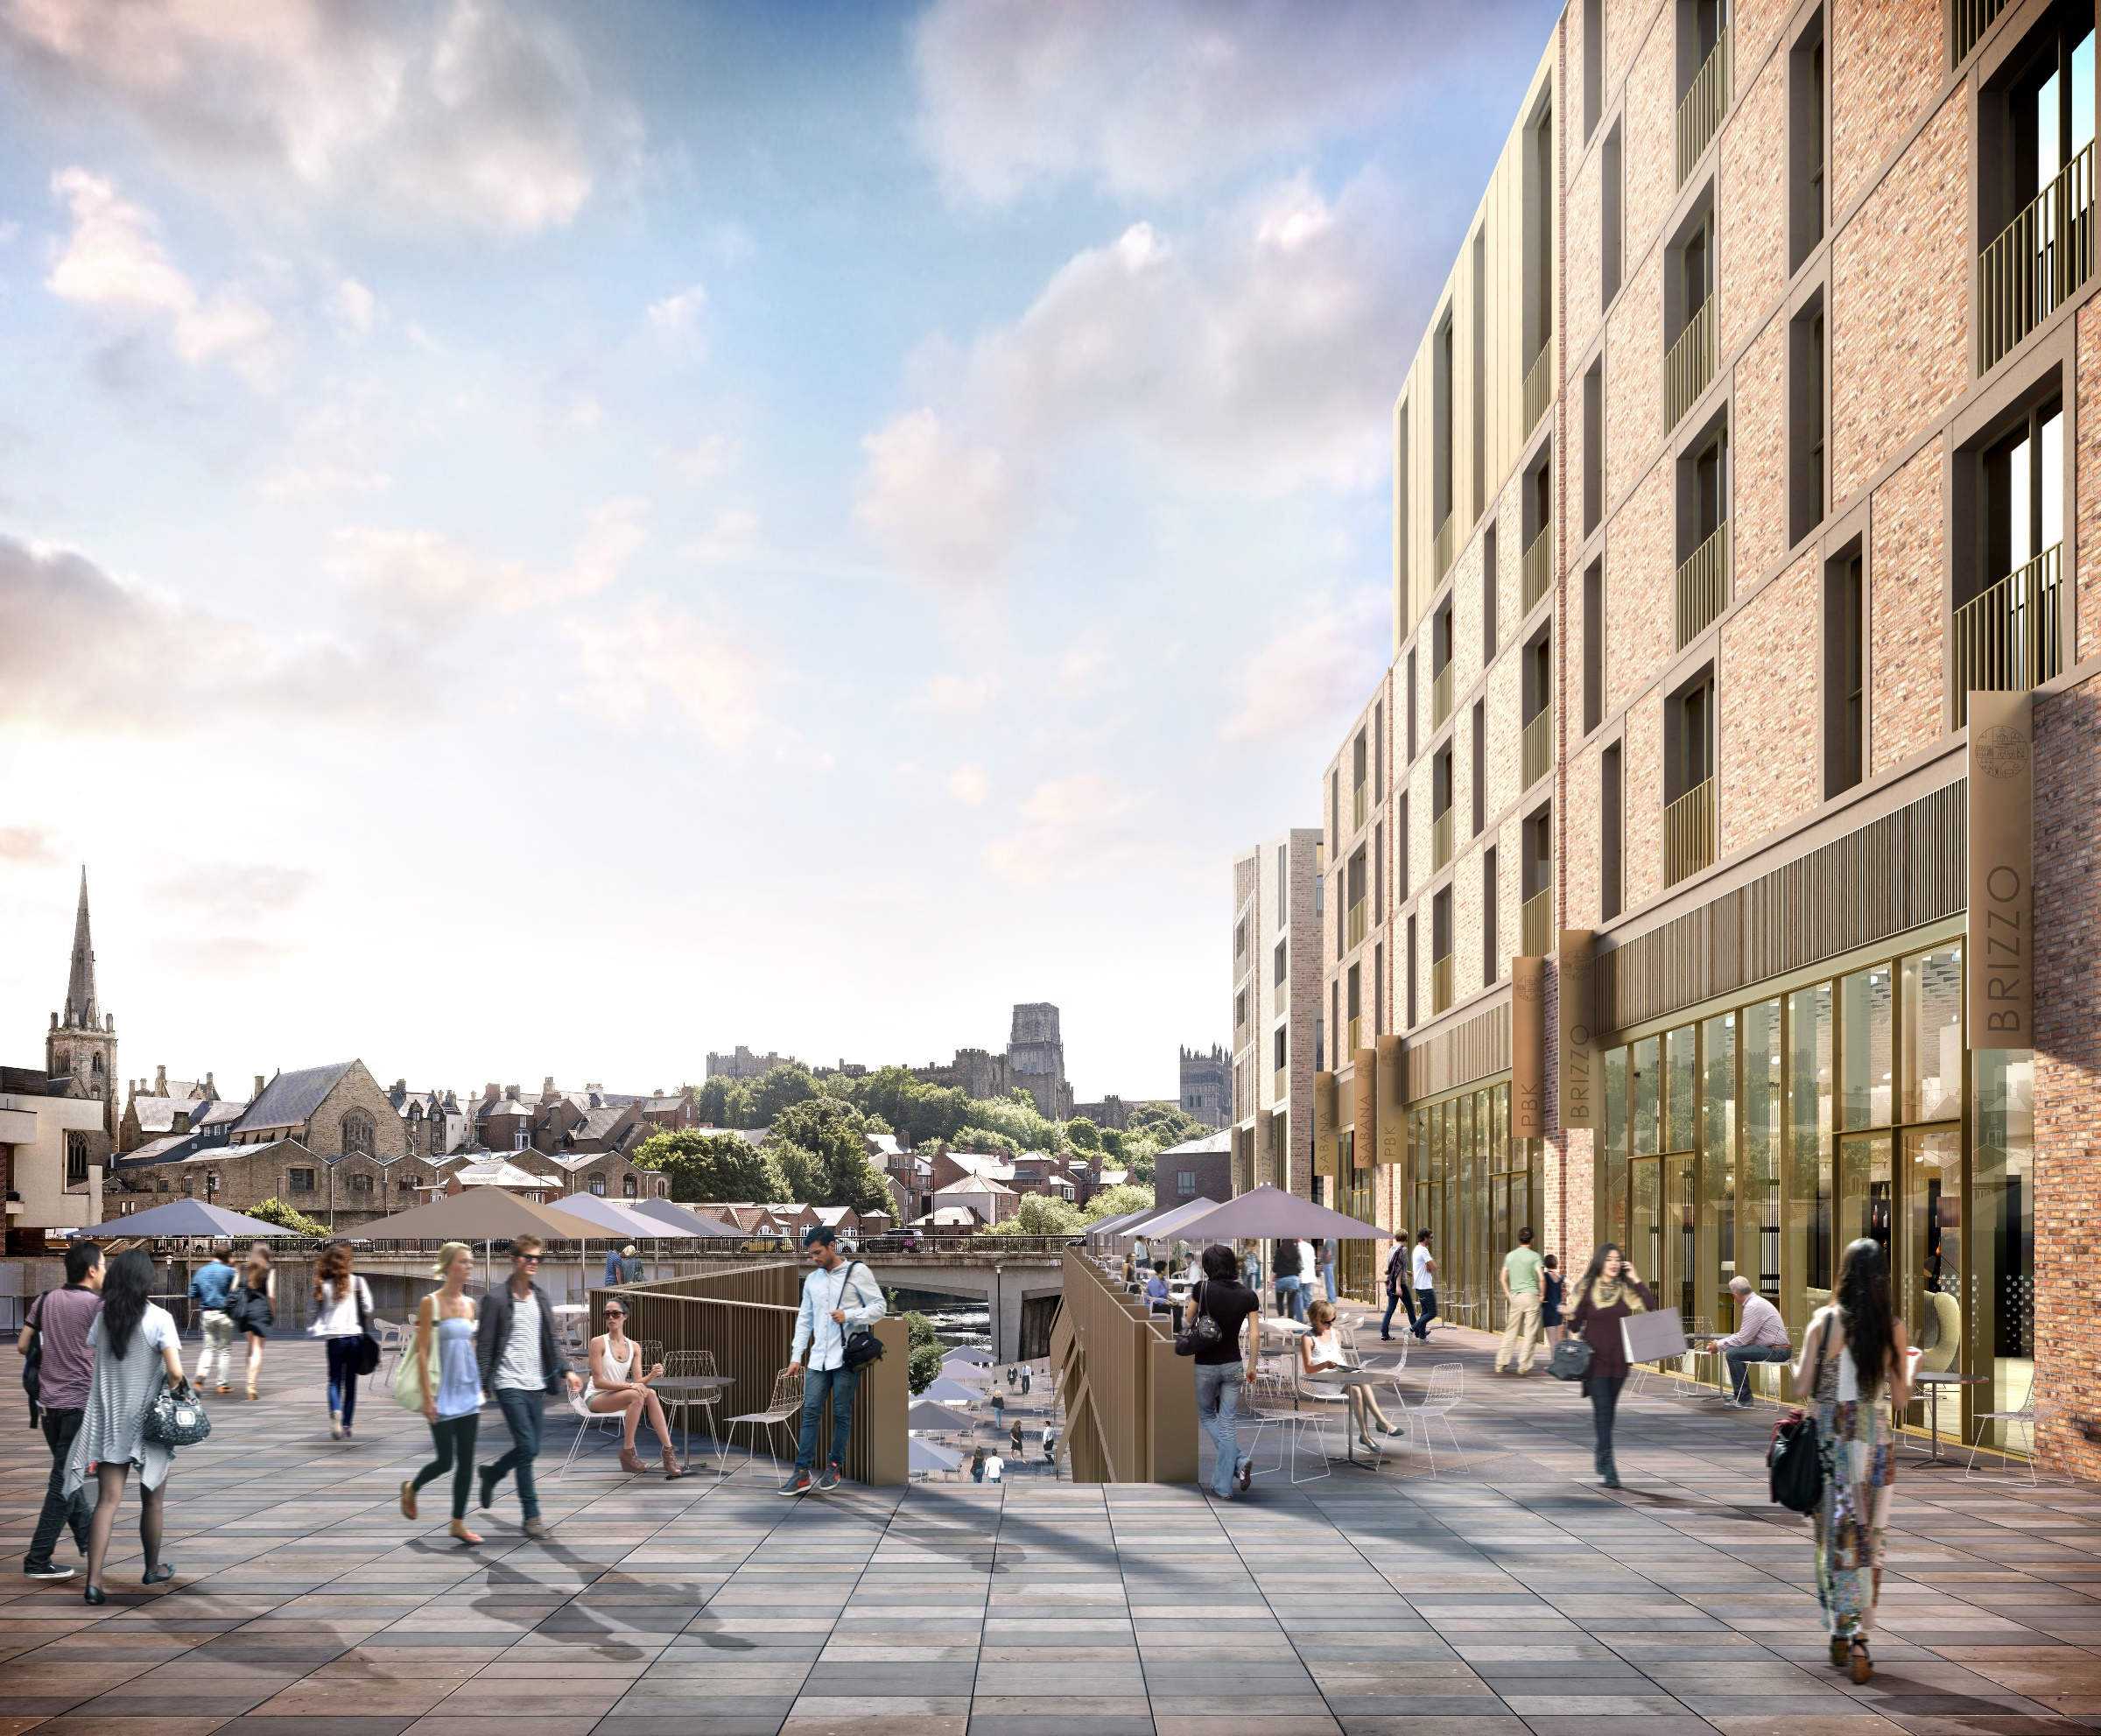 VISION: An artist's impression of the Durham City Milburngate development